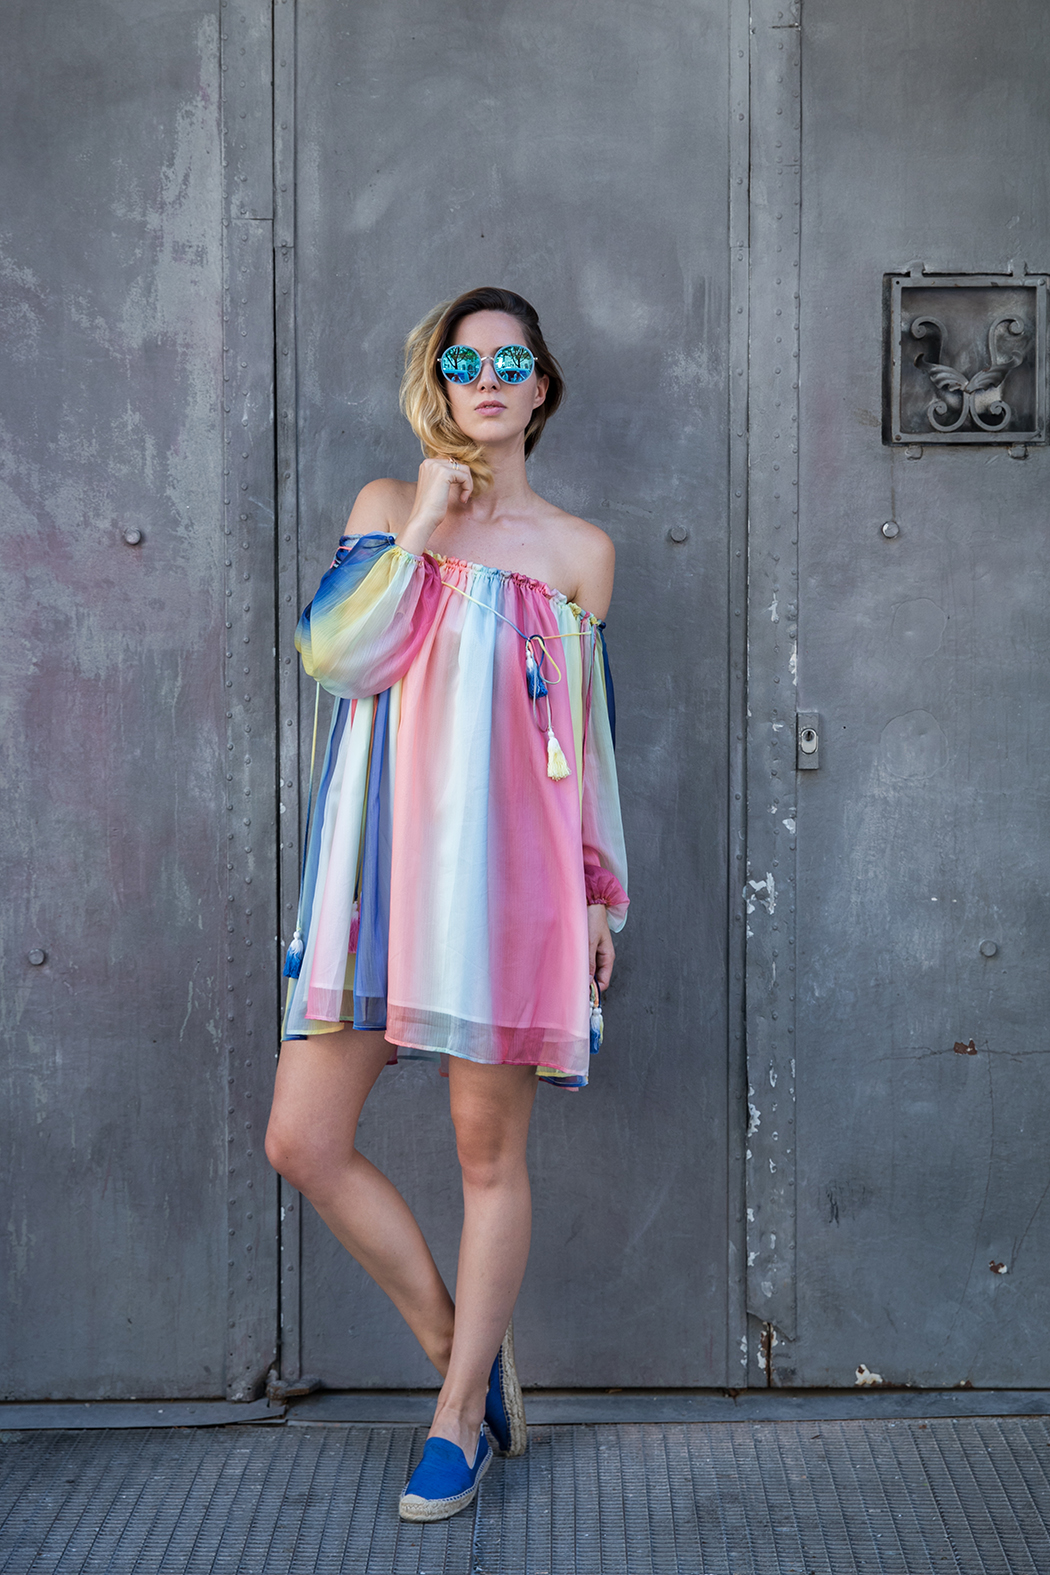 Fashionblog-Fashionblogger-Fashion-Blog-Blogger-Modeblog-Modeblogger-Mode-Rainbow-Dress-Chloe-Regenbogen-Lindarella-2